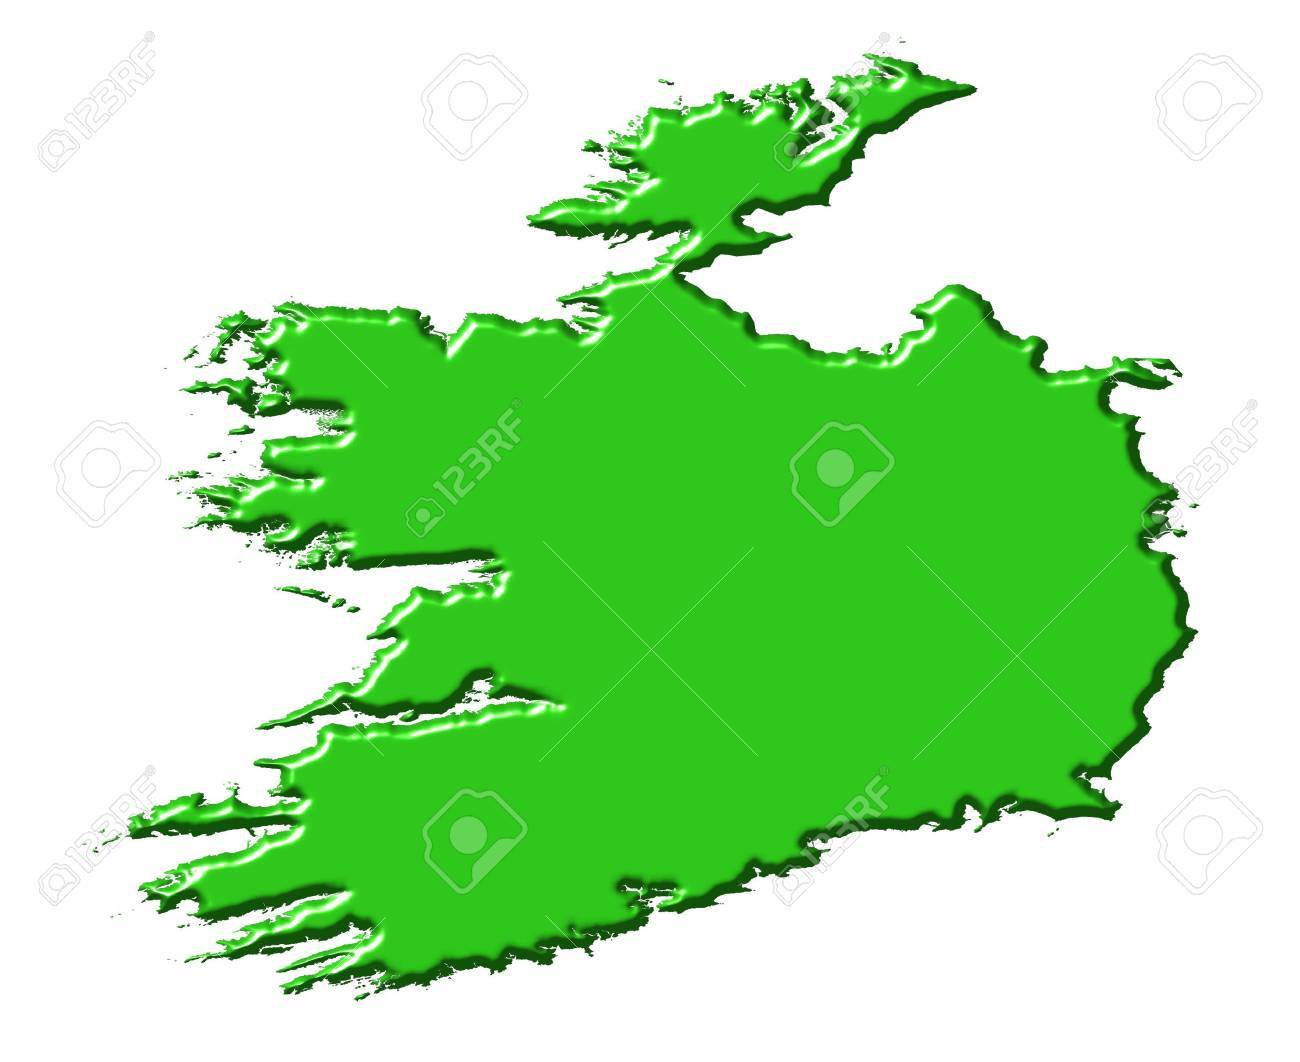 Map Of Ireland 3d.Ireland 3d Map With National Color Isolated In White